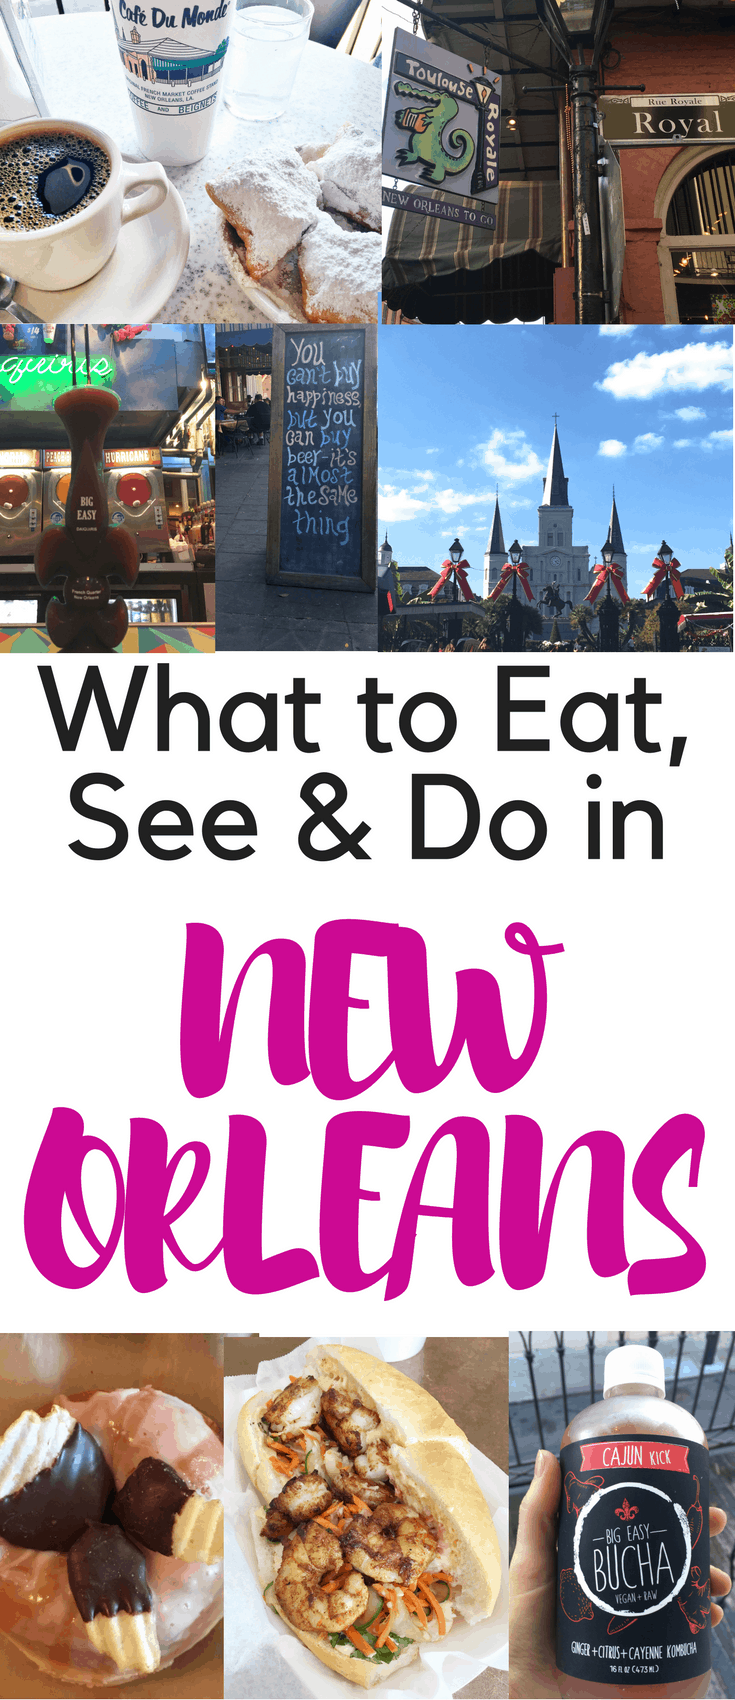 This New Orleans travel guide will show you what to eat, see and do in the French Quarter and beyond. Keep reading to find the best travel tips for New Orleans.